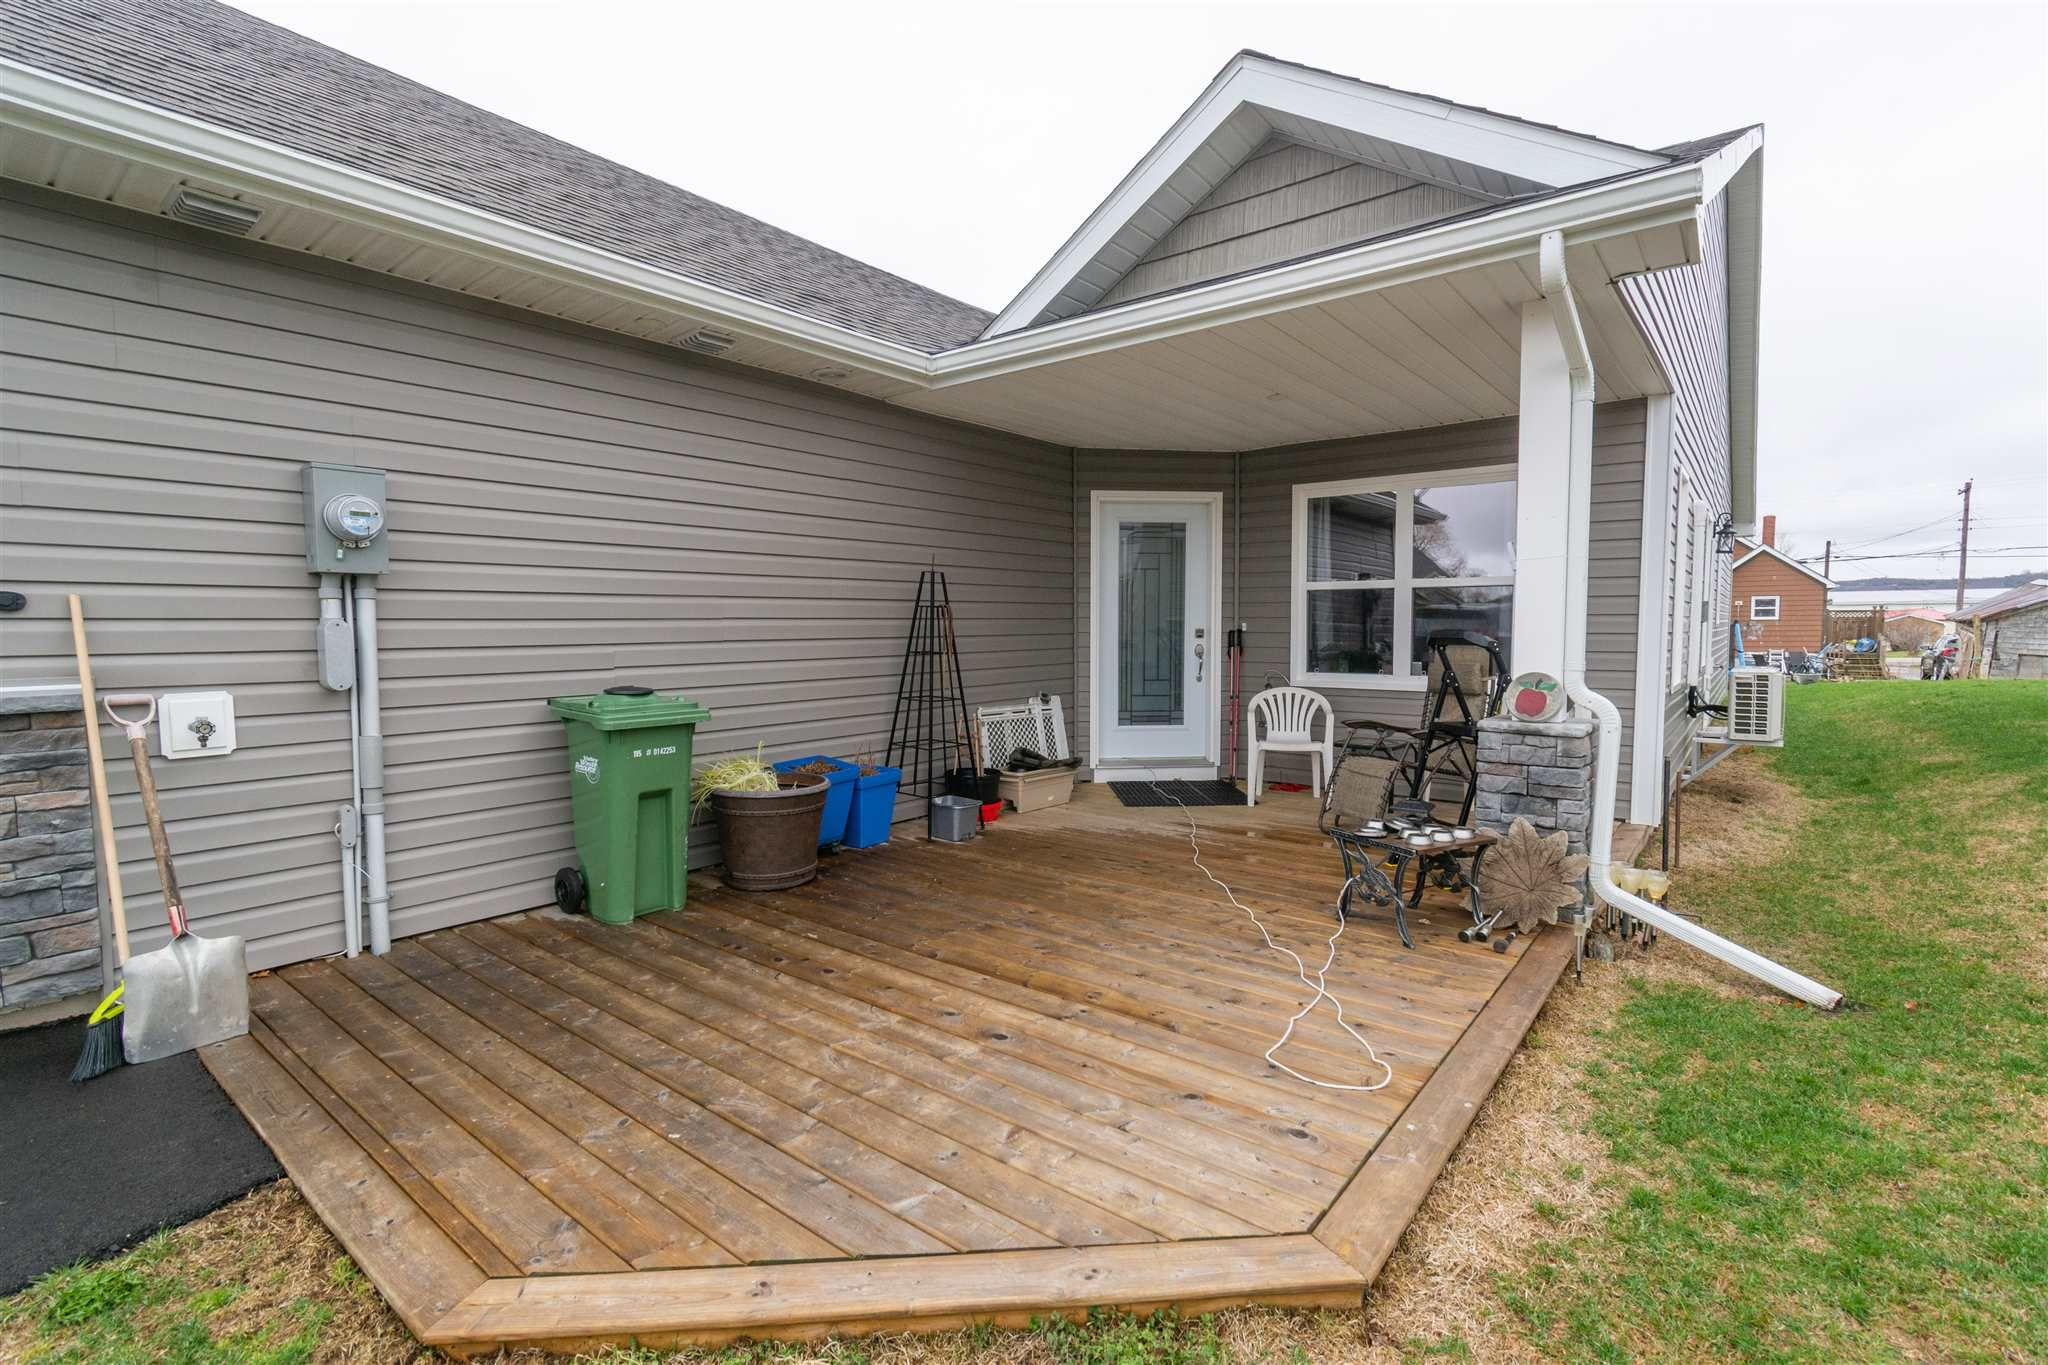 Main Photo: 22 Selena Court in Port Williams: 404-Kings County Residential for sale (Annapolis Valley)  : MLS®# 202109663